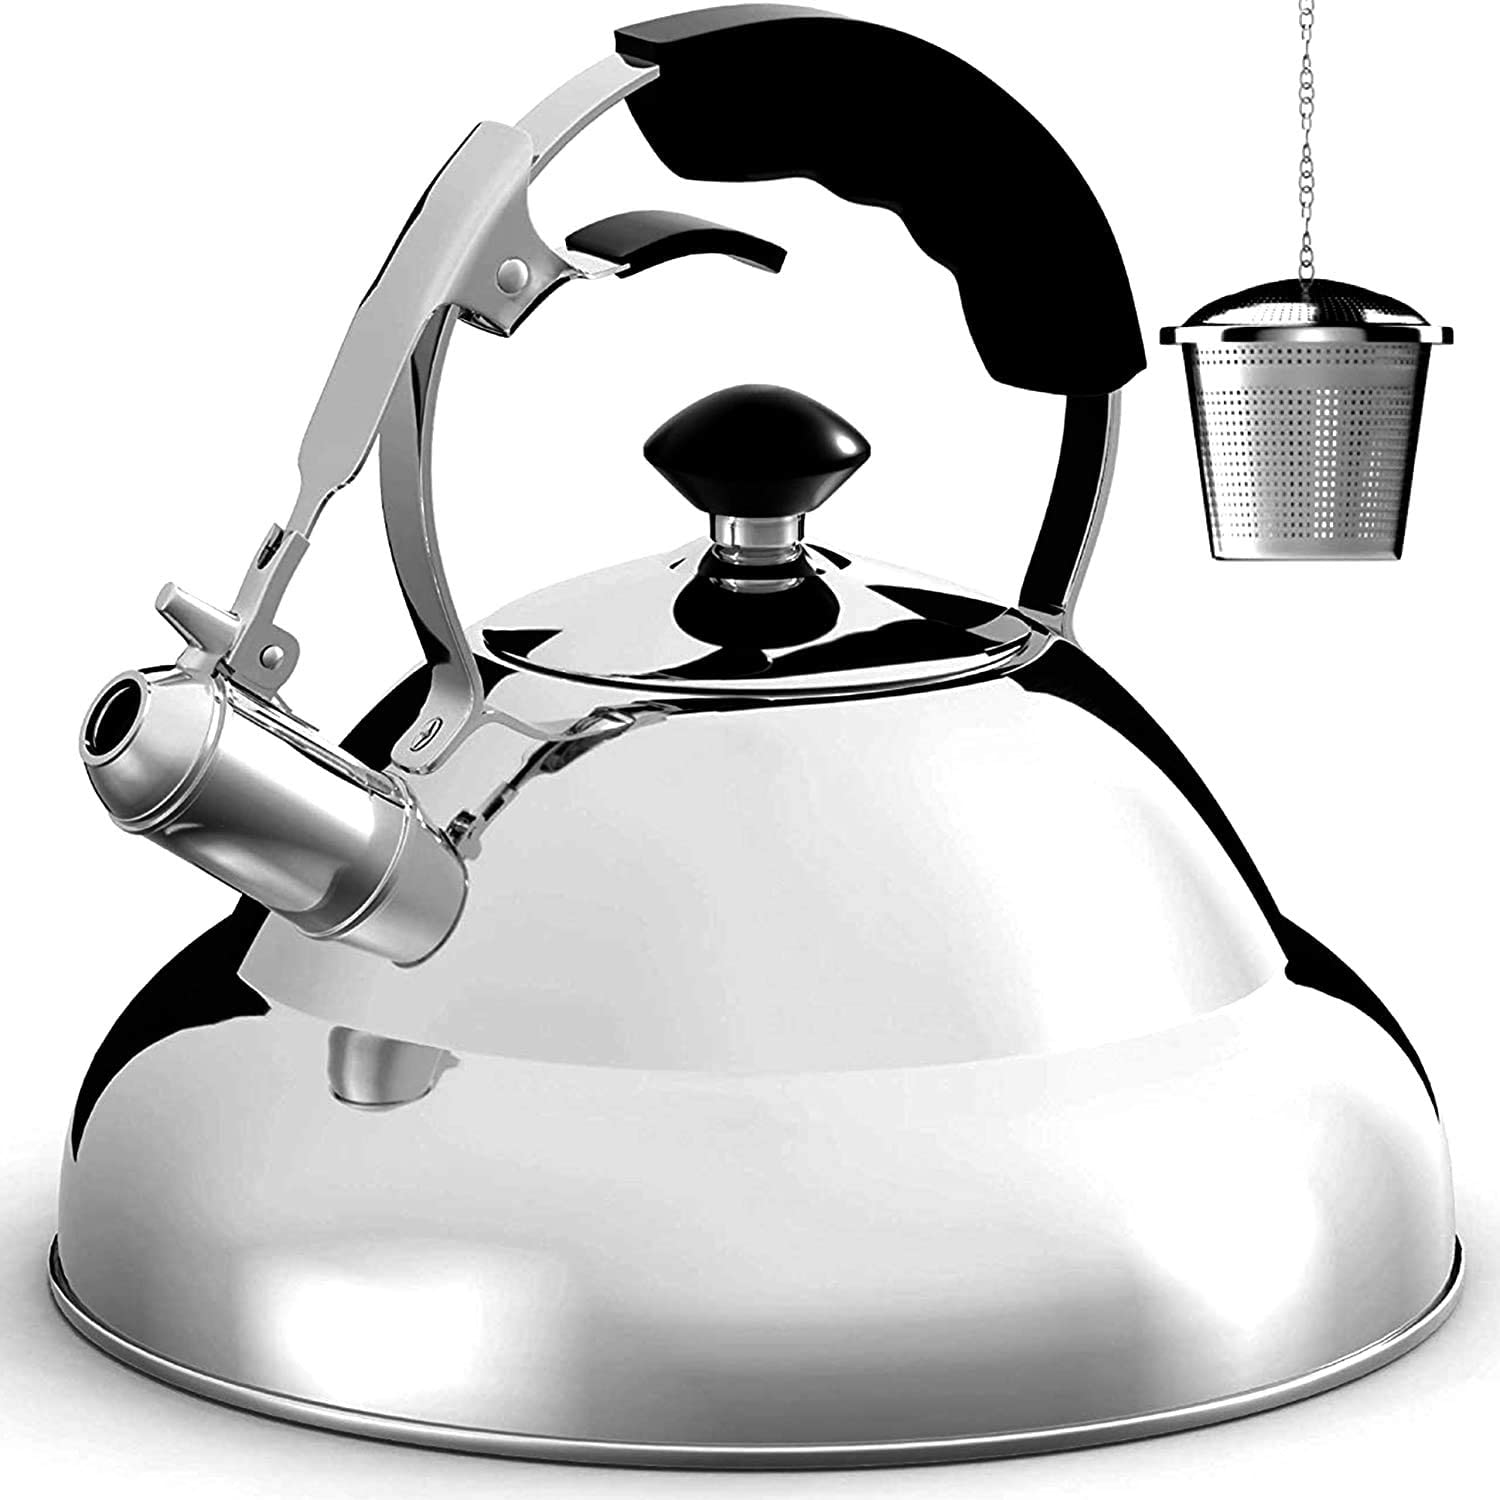 Tea Kettle Stovetop Whistling Tea Pot